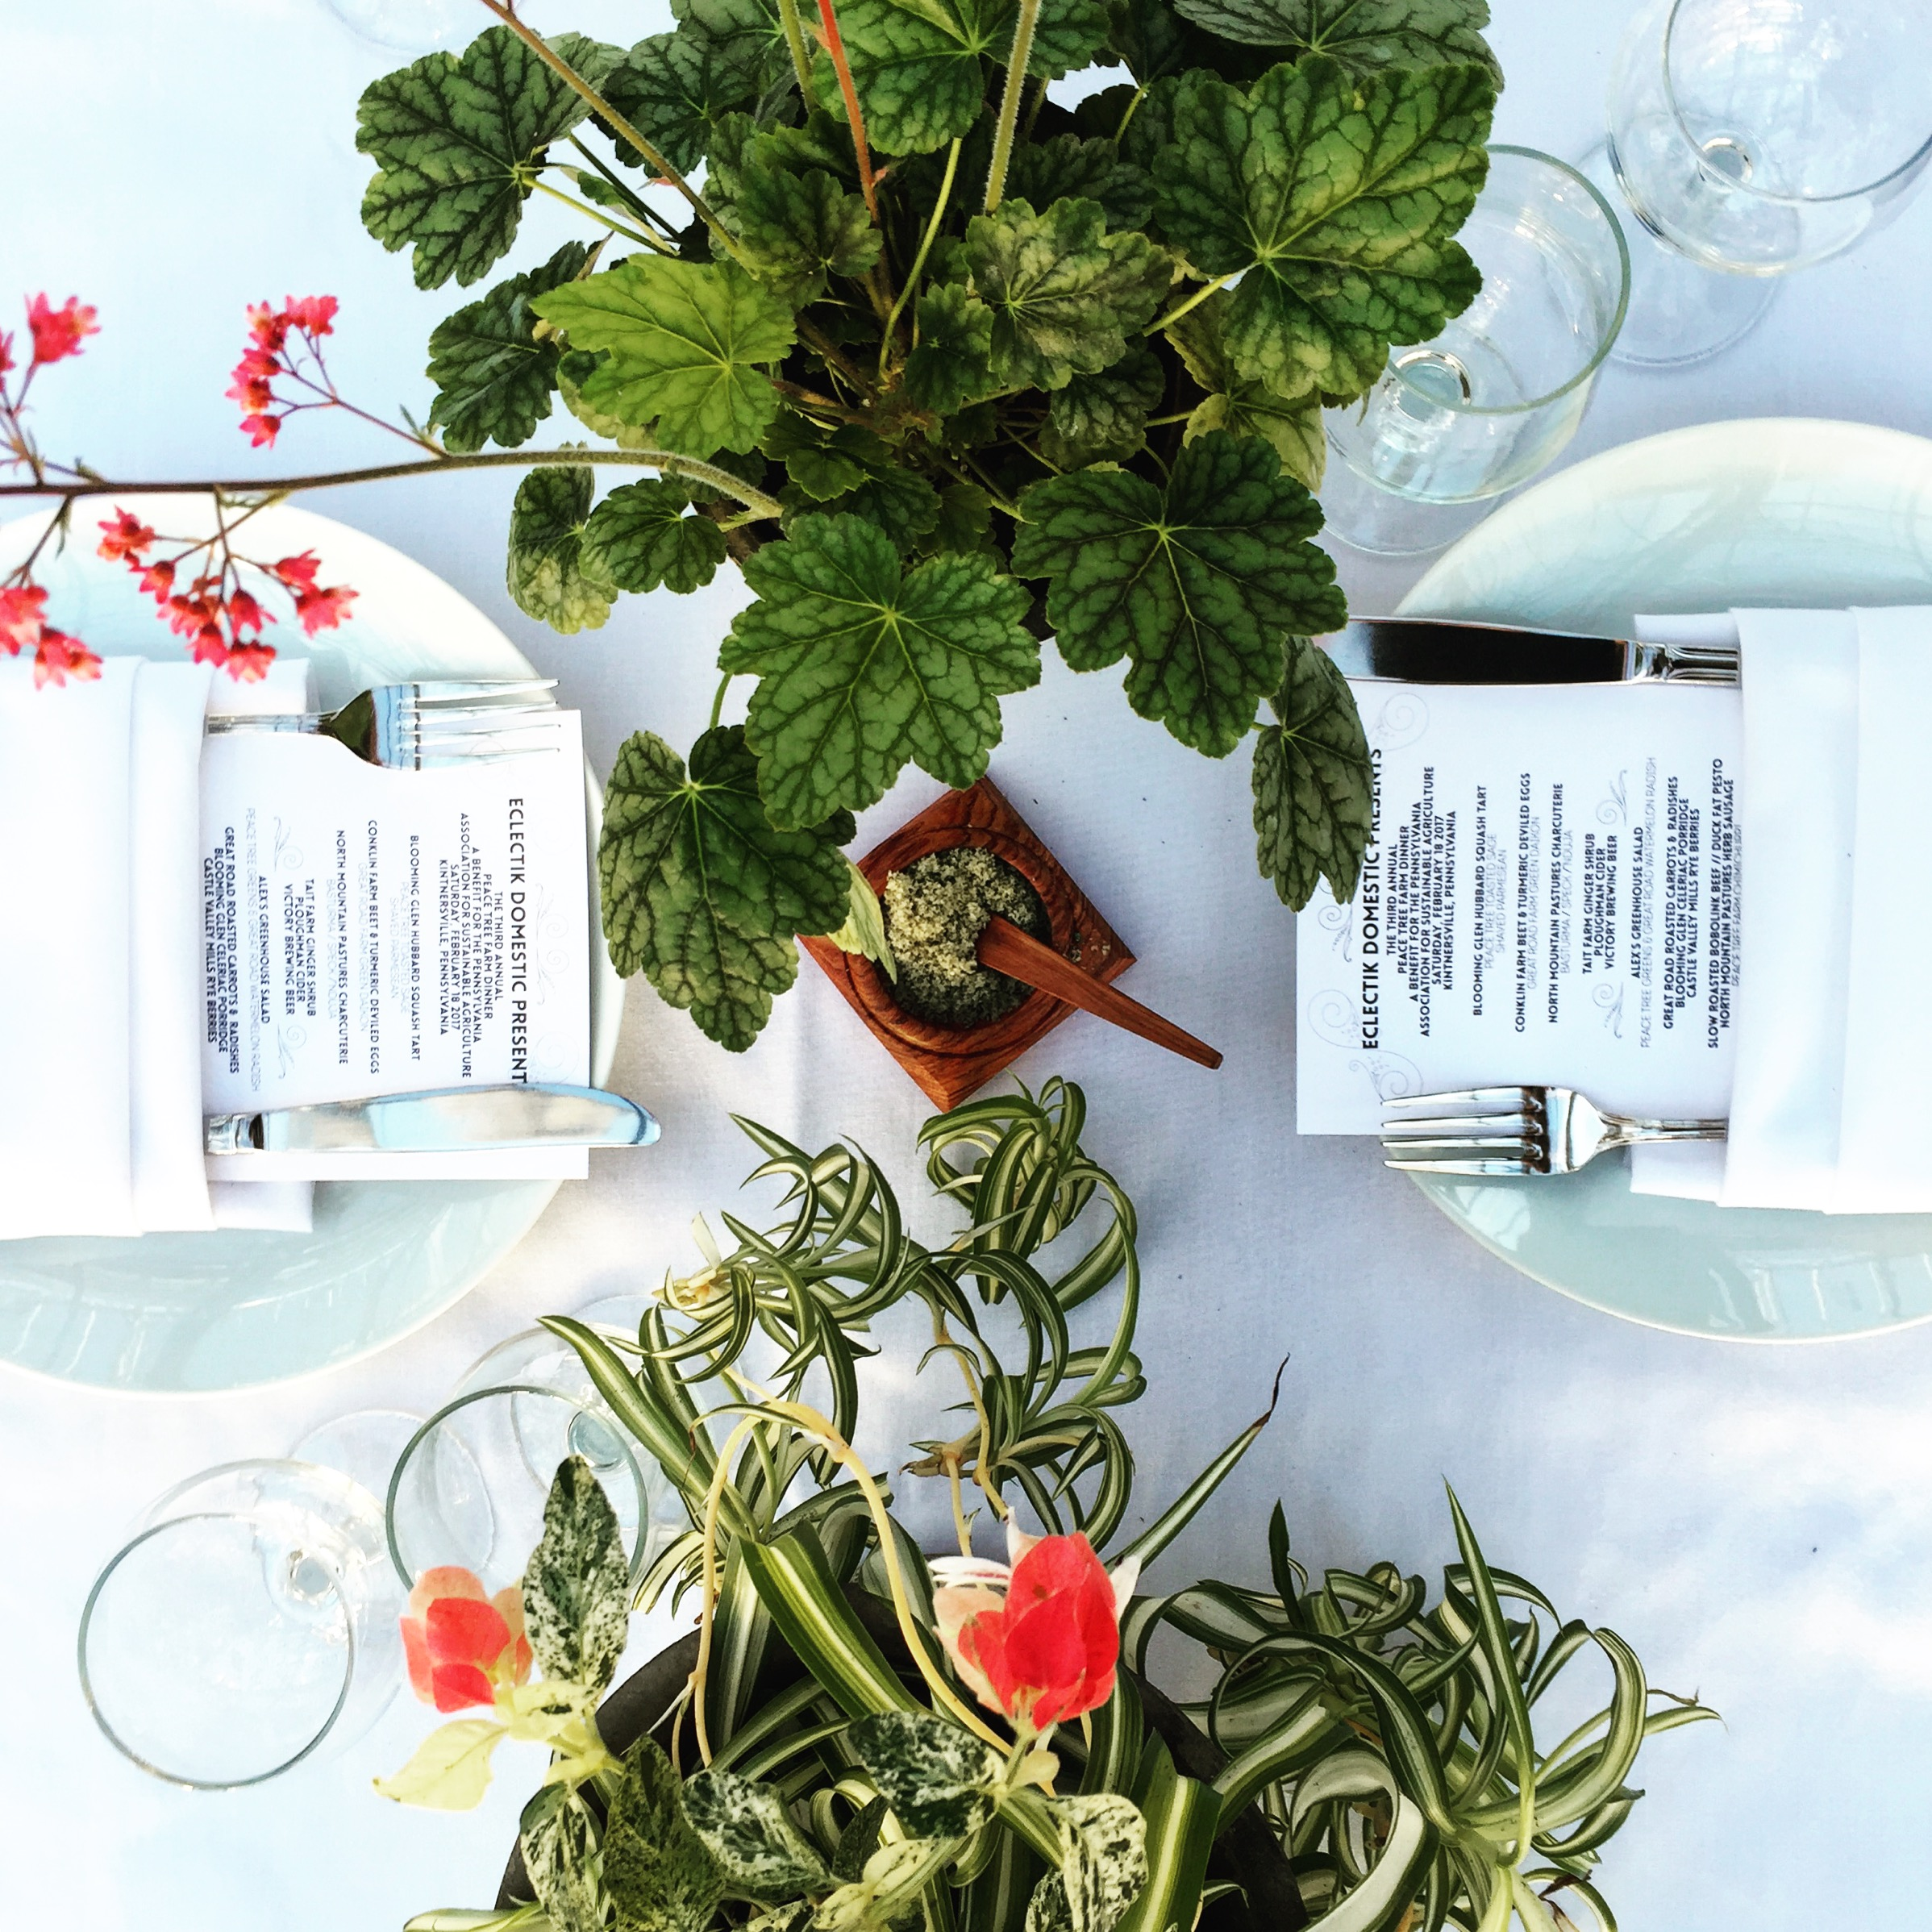 Table Scapes, arrangements by Candy Traven// Kintnersville, Pennsylvania